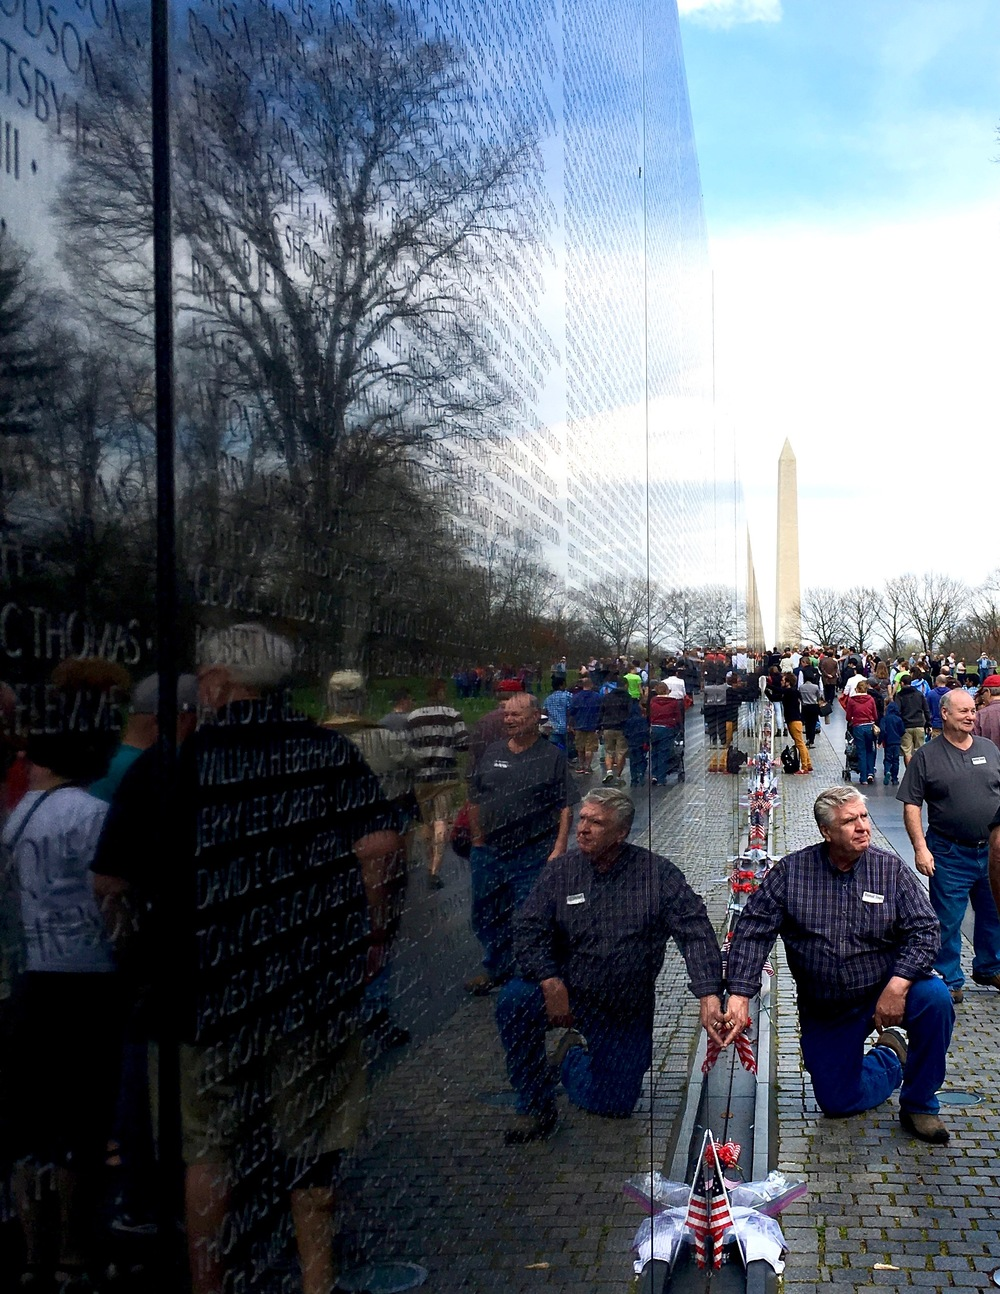 veterans-memorial-washington-dc-a-peach-life